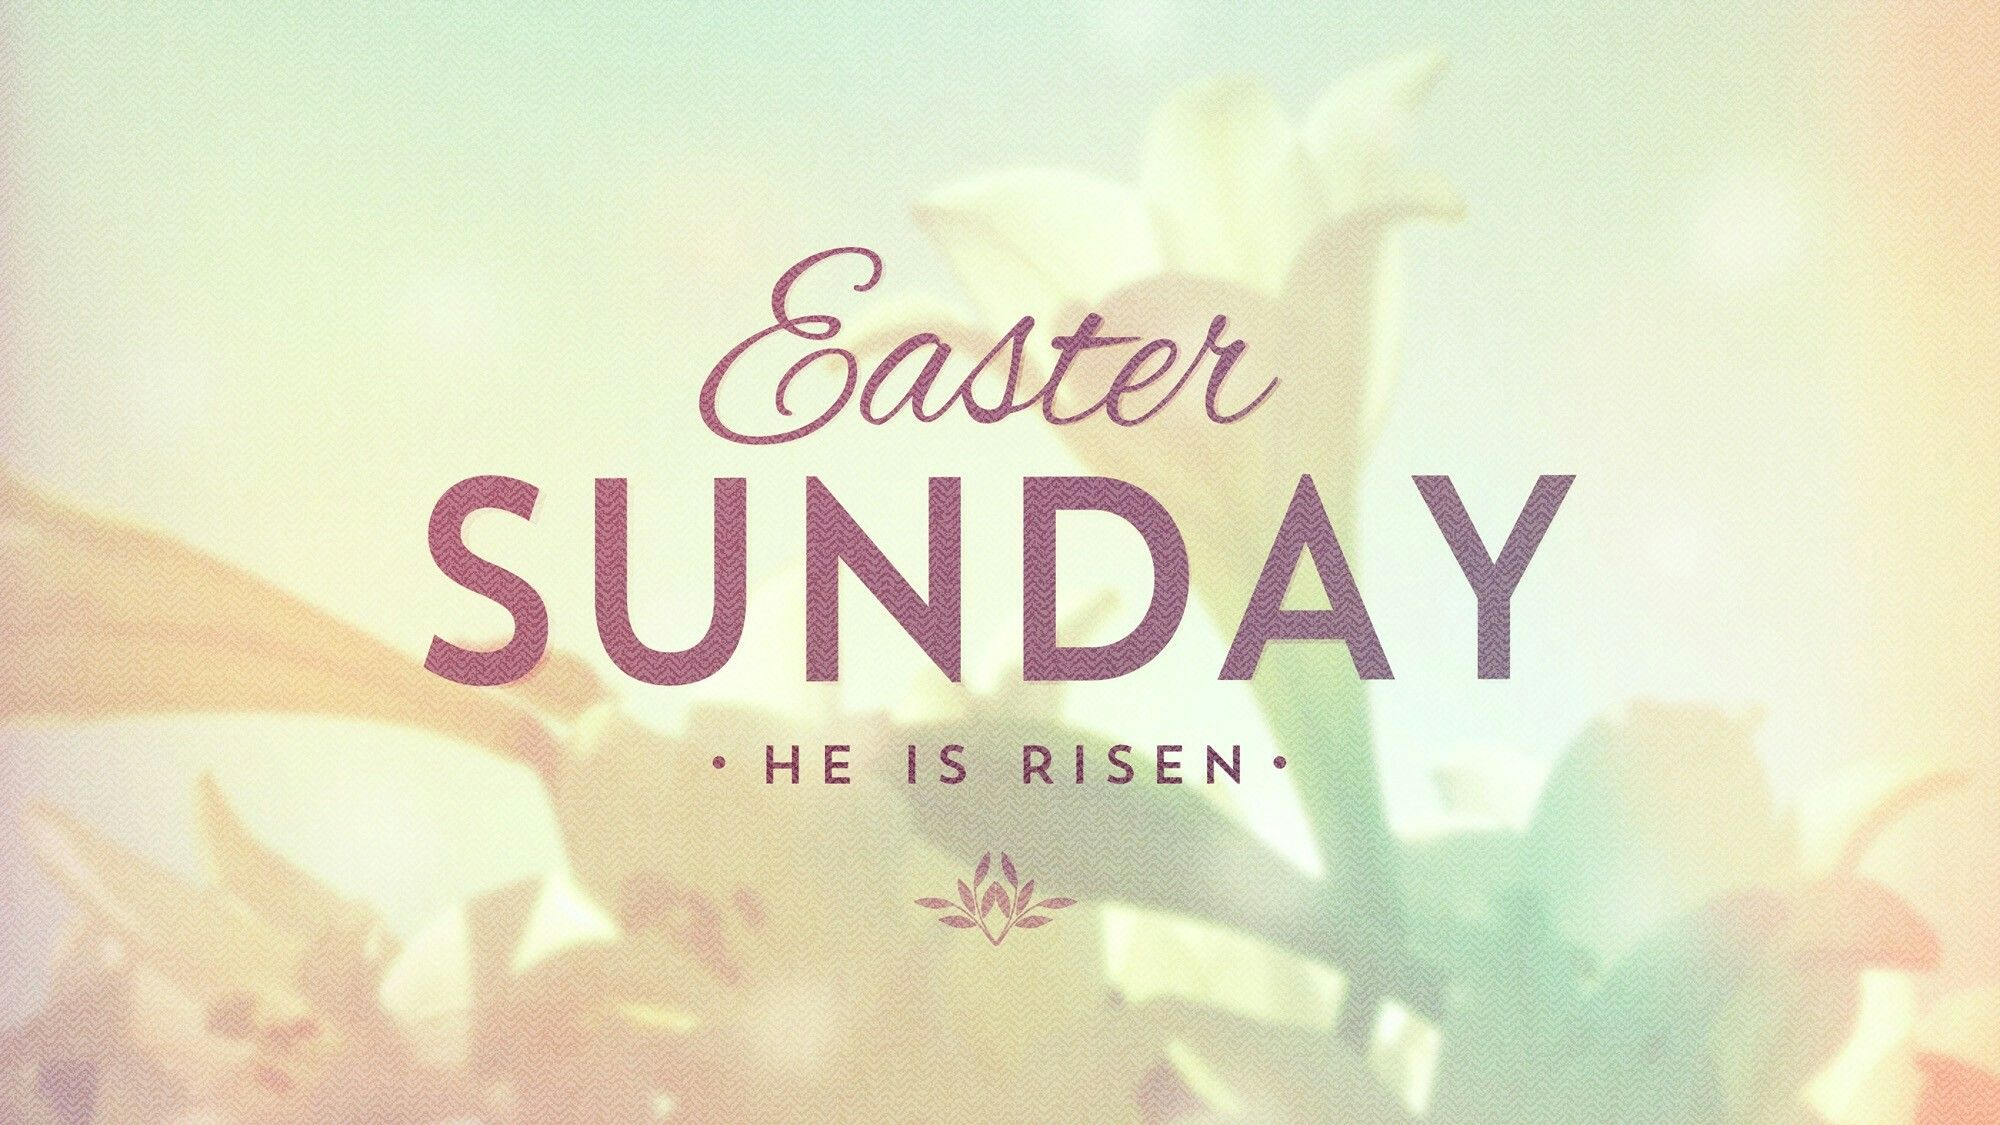 Pin by Mary Mendez on Easter Happy easter sunday, Happy